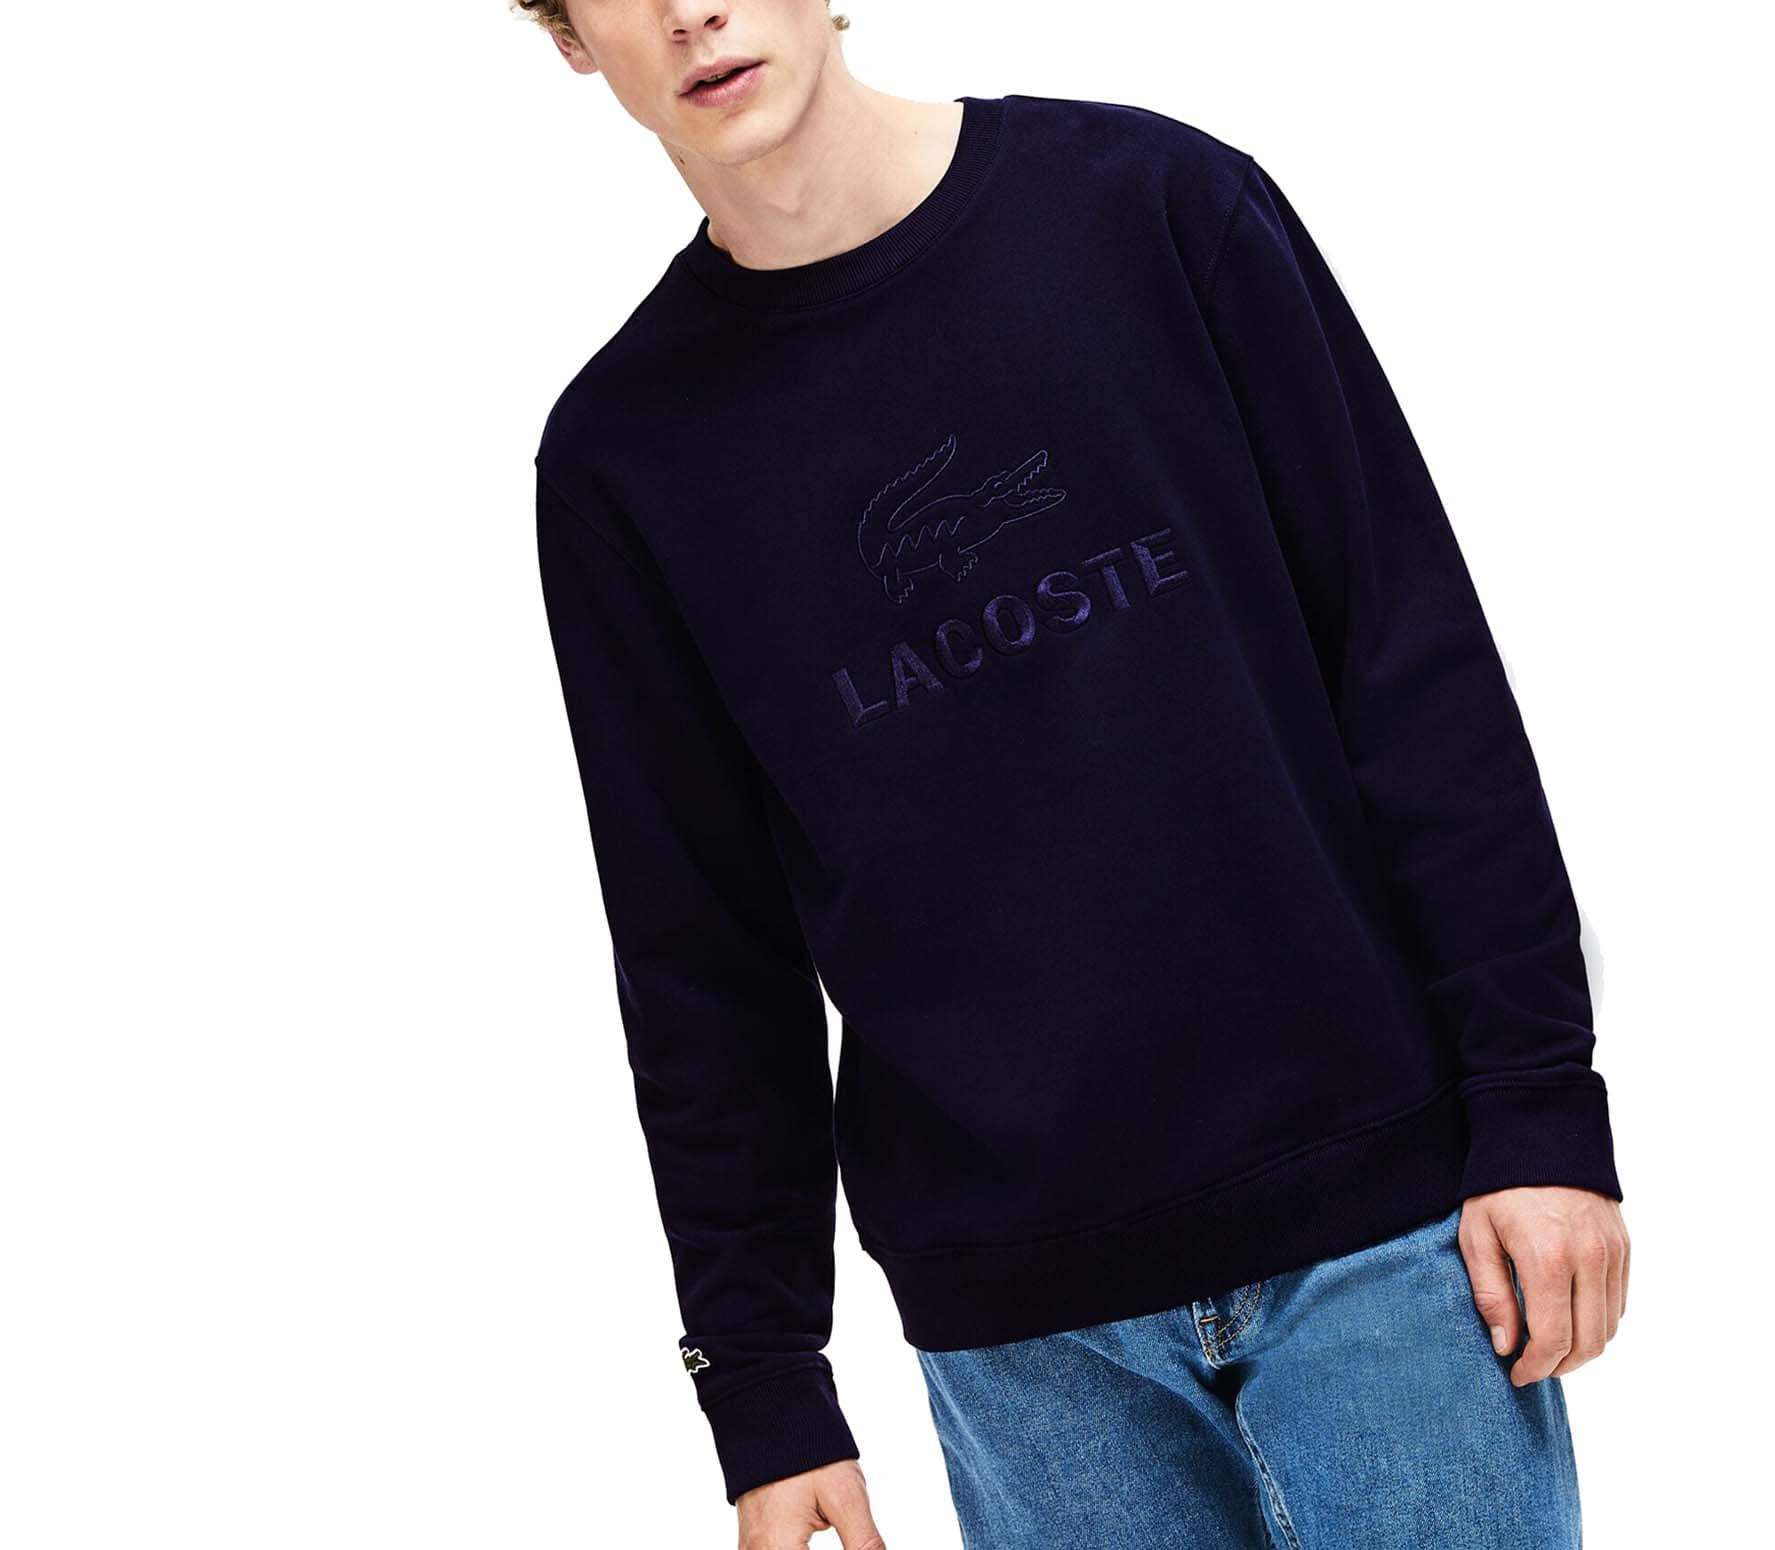 Regular Fit Herren Sweatshirt